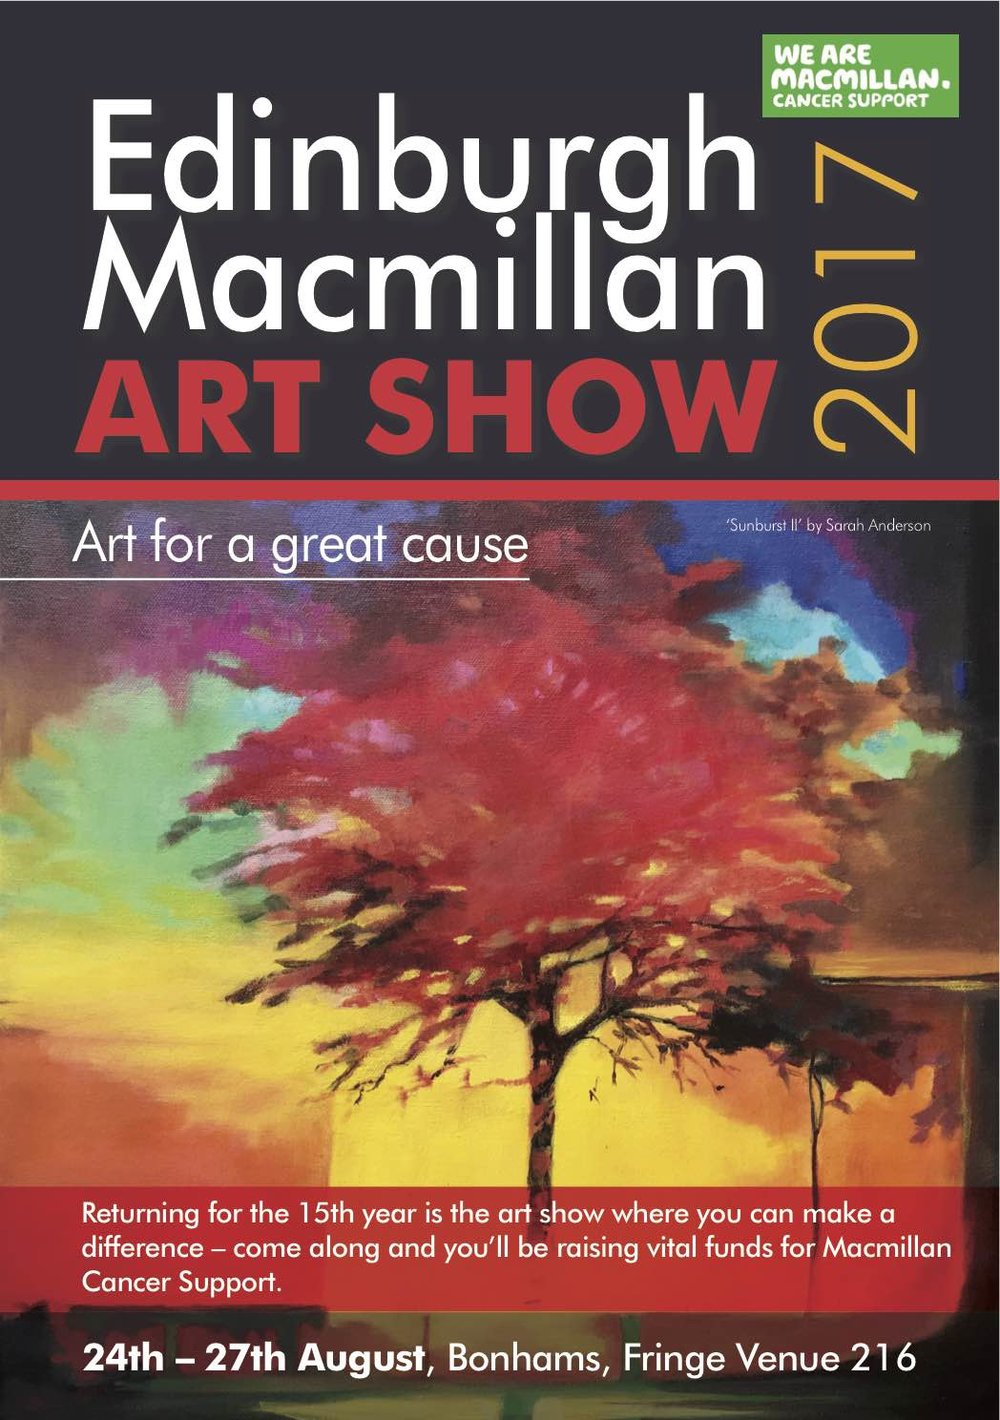 Macmillan_flyer2017_final copy.jpg